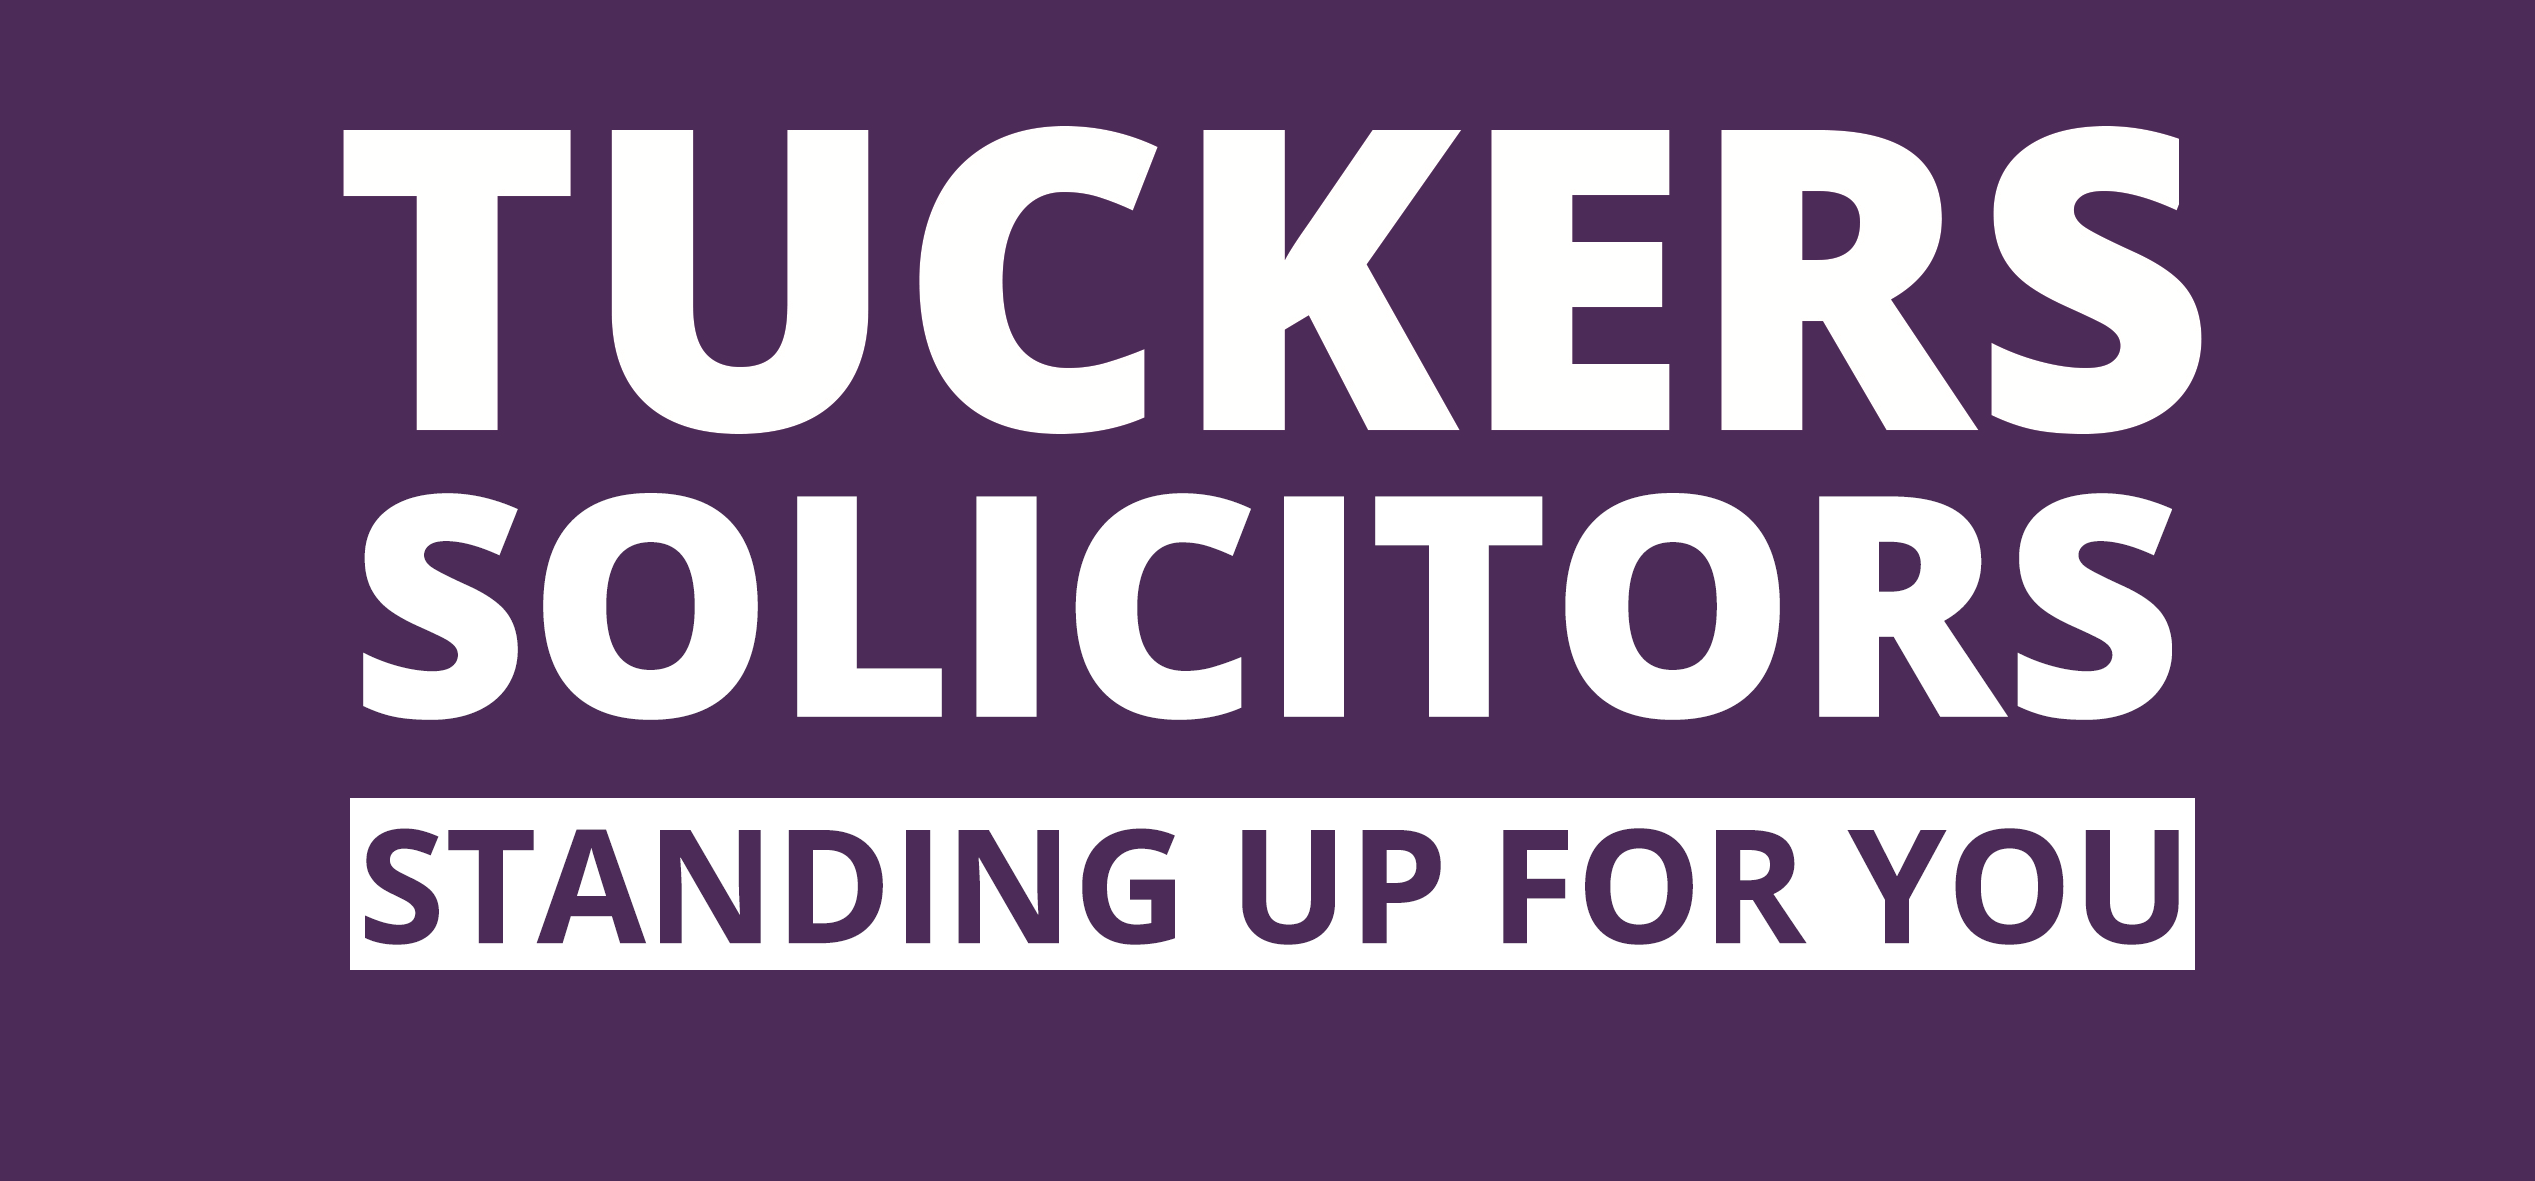 Tuckers Solicitors